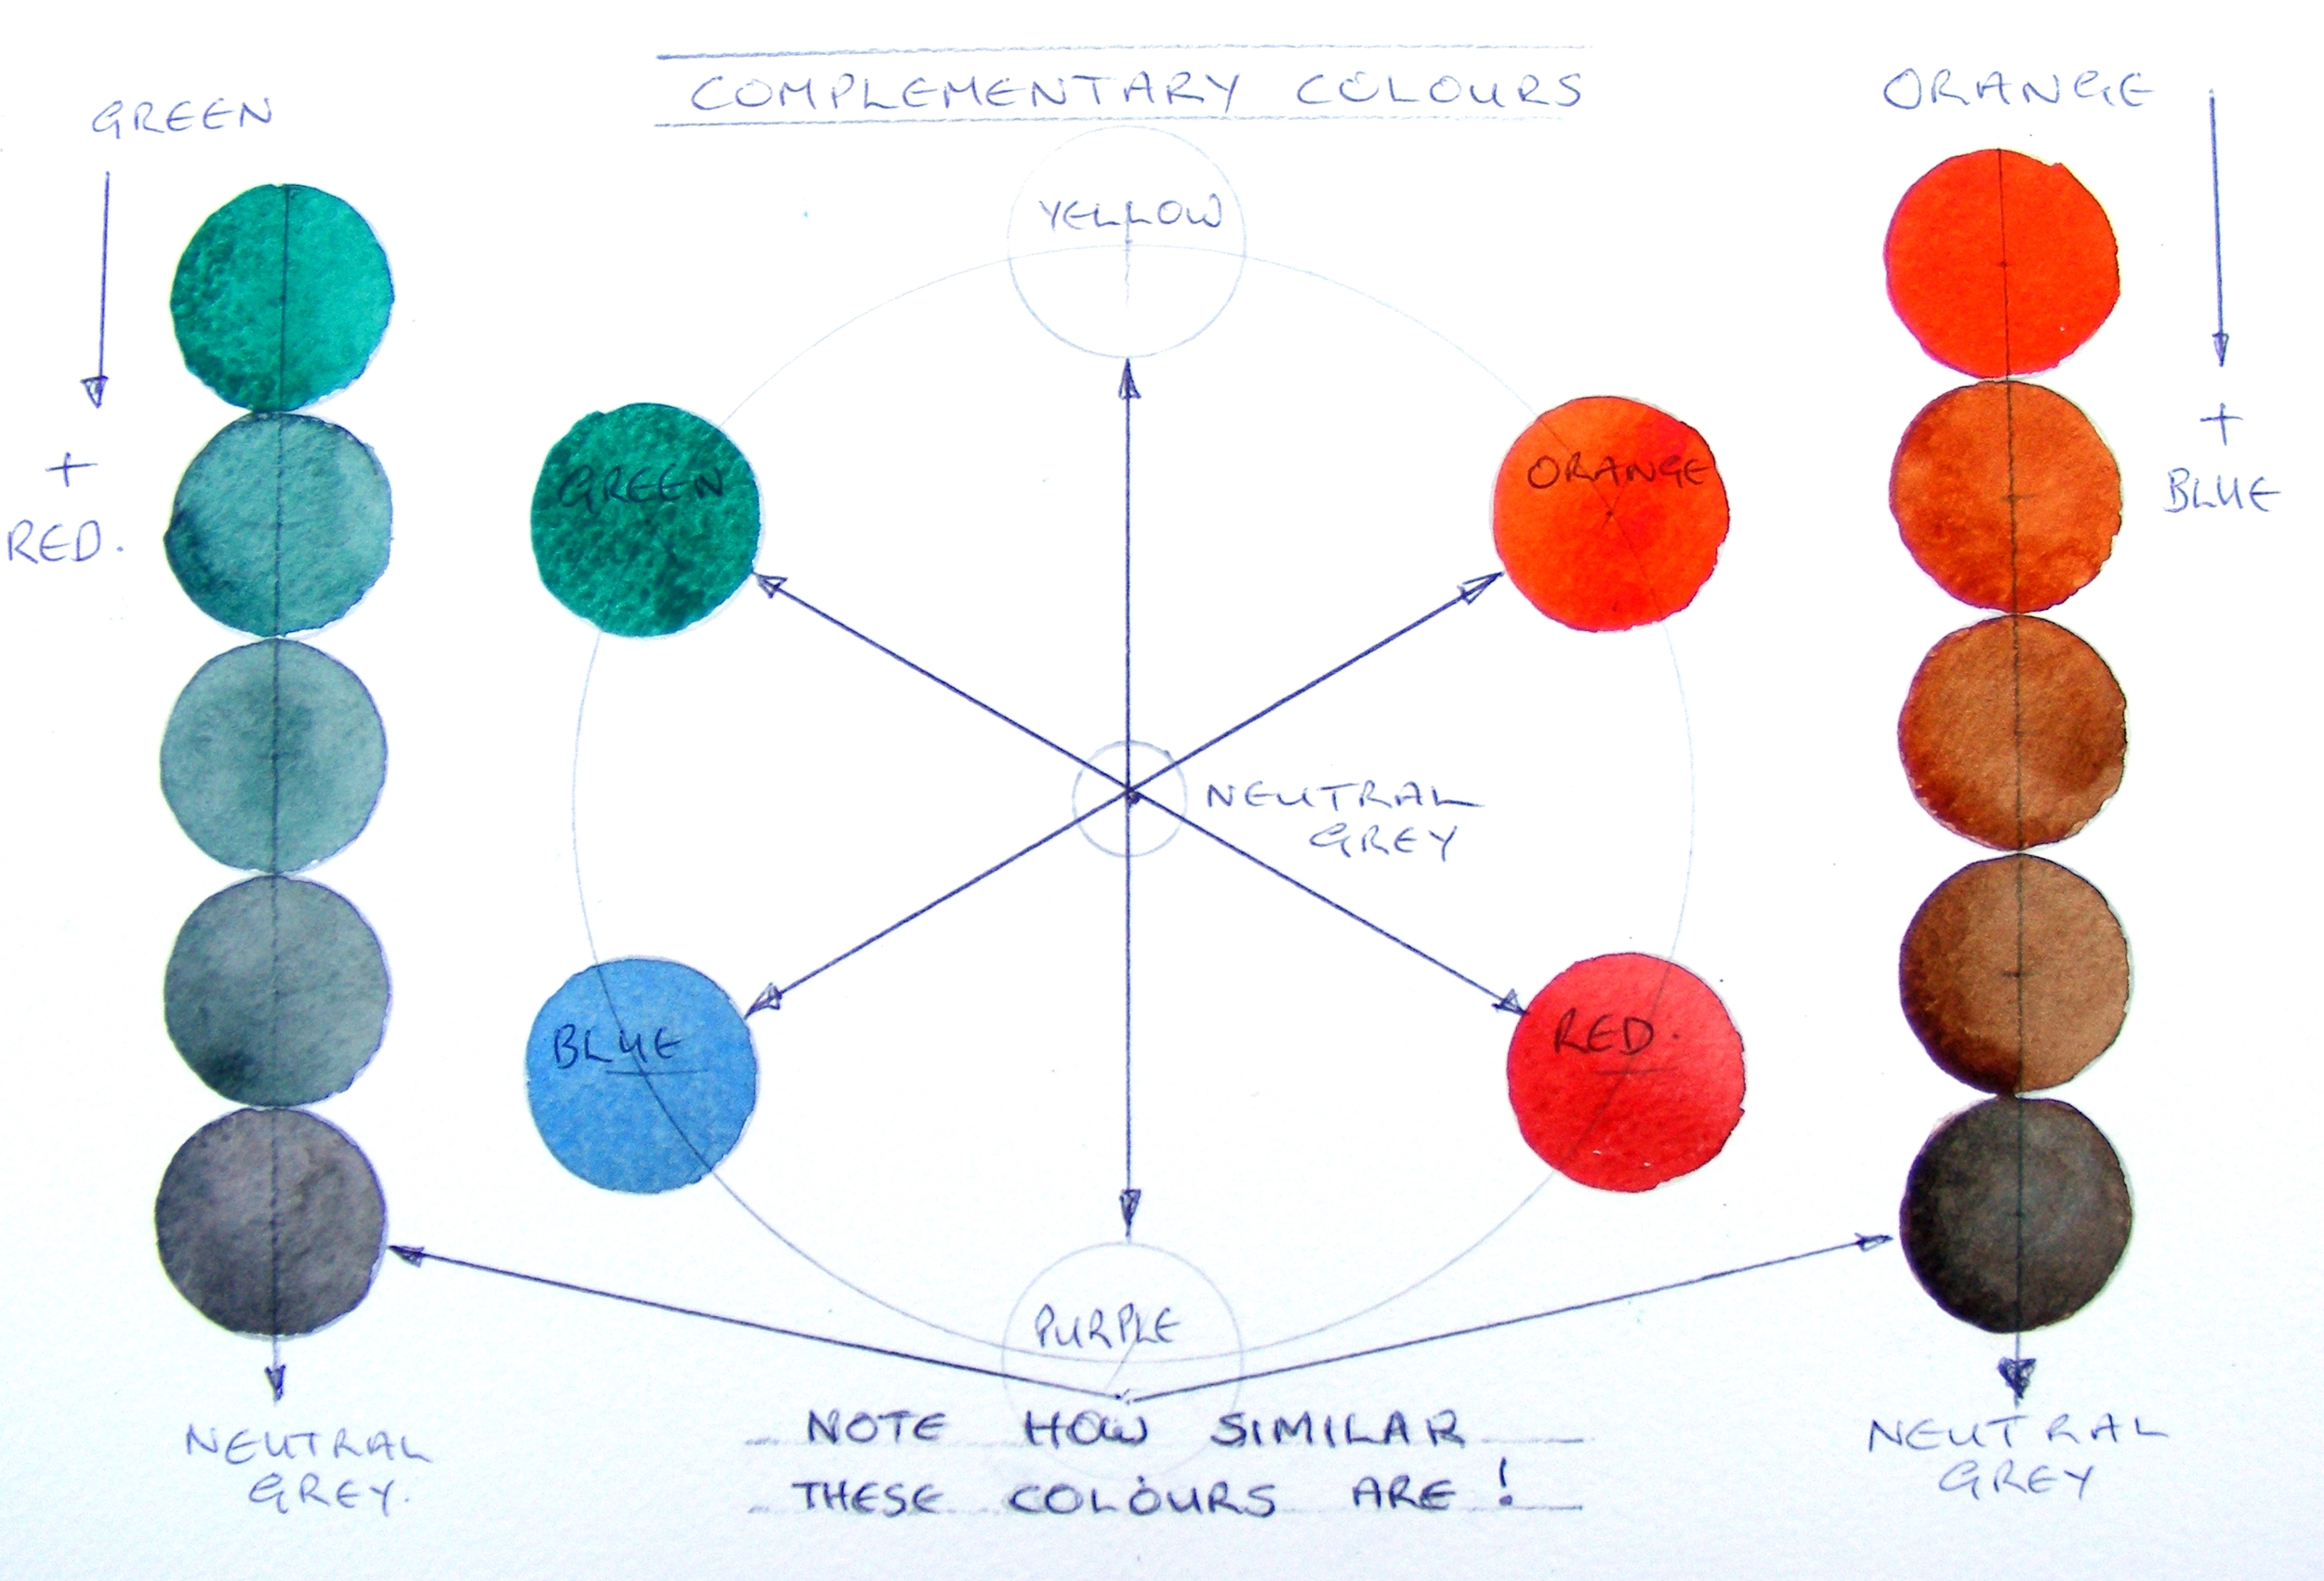 the complementary colours